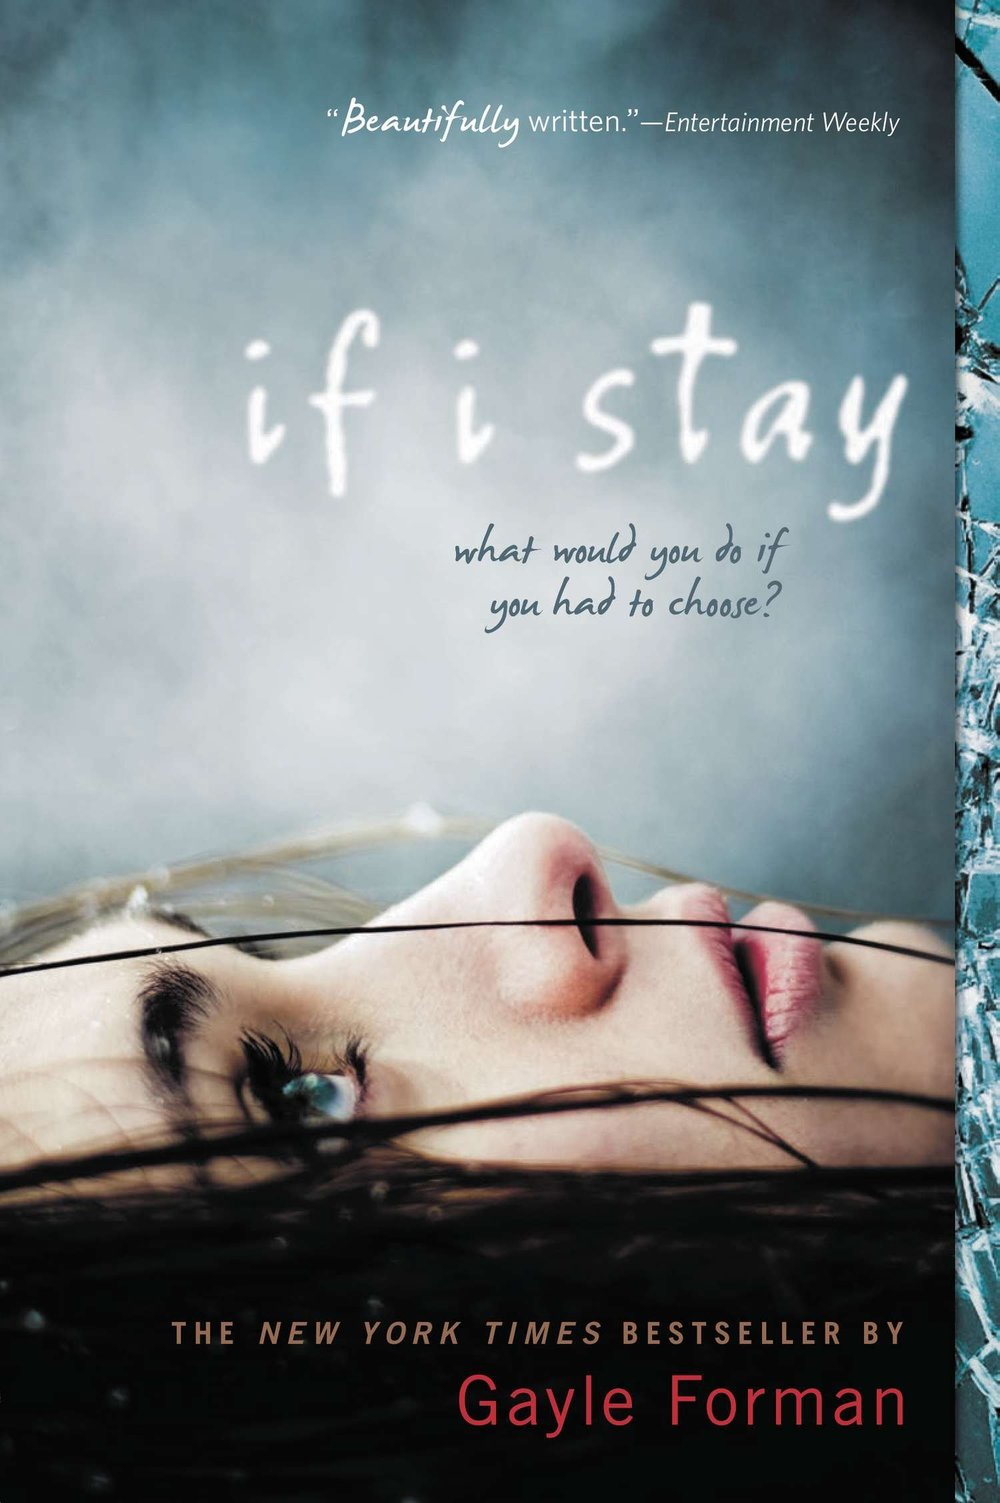 IfIStay.jpg